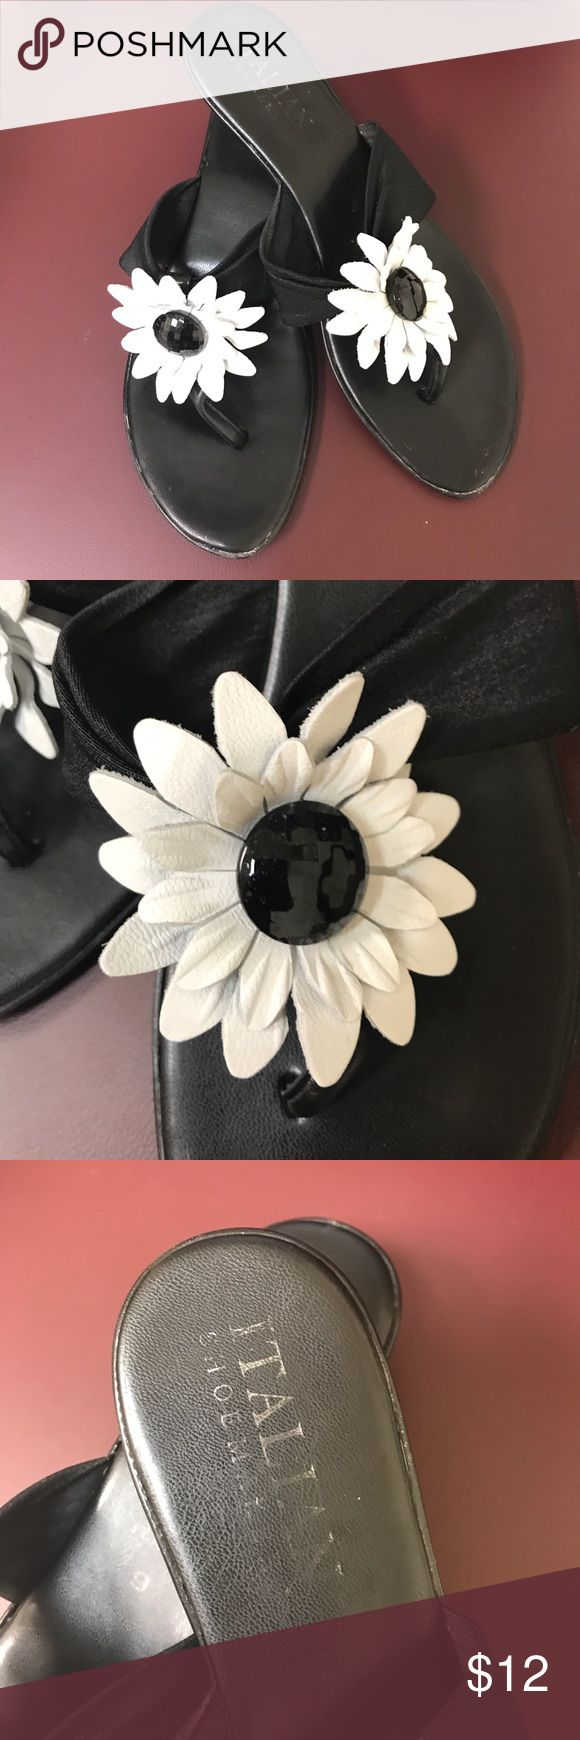 Ladies sandals Ladies Italian shoe maker brand dressy flip flop sandal-with leather flower decor-Ladies size 9-the strap on top of foot has some stretch to it. Sandals in excellent condition!! Italian Shoe Maker Shoes Sandals